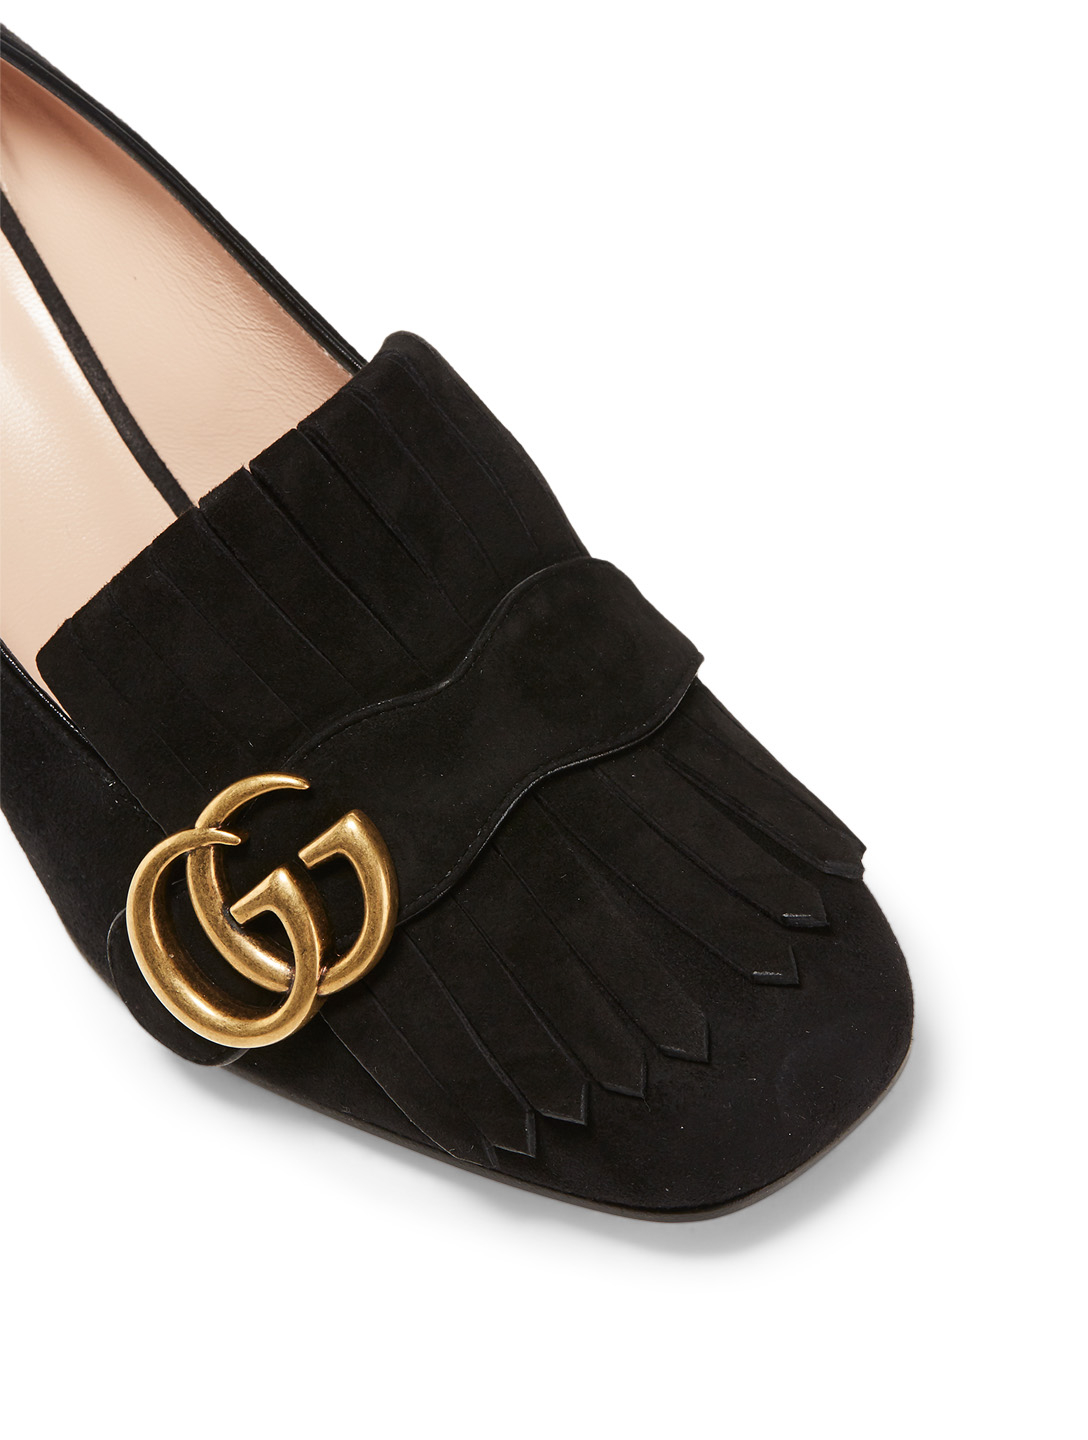 GUCCI Marmont Suede Loafer Pumps Designers Black